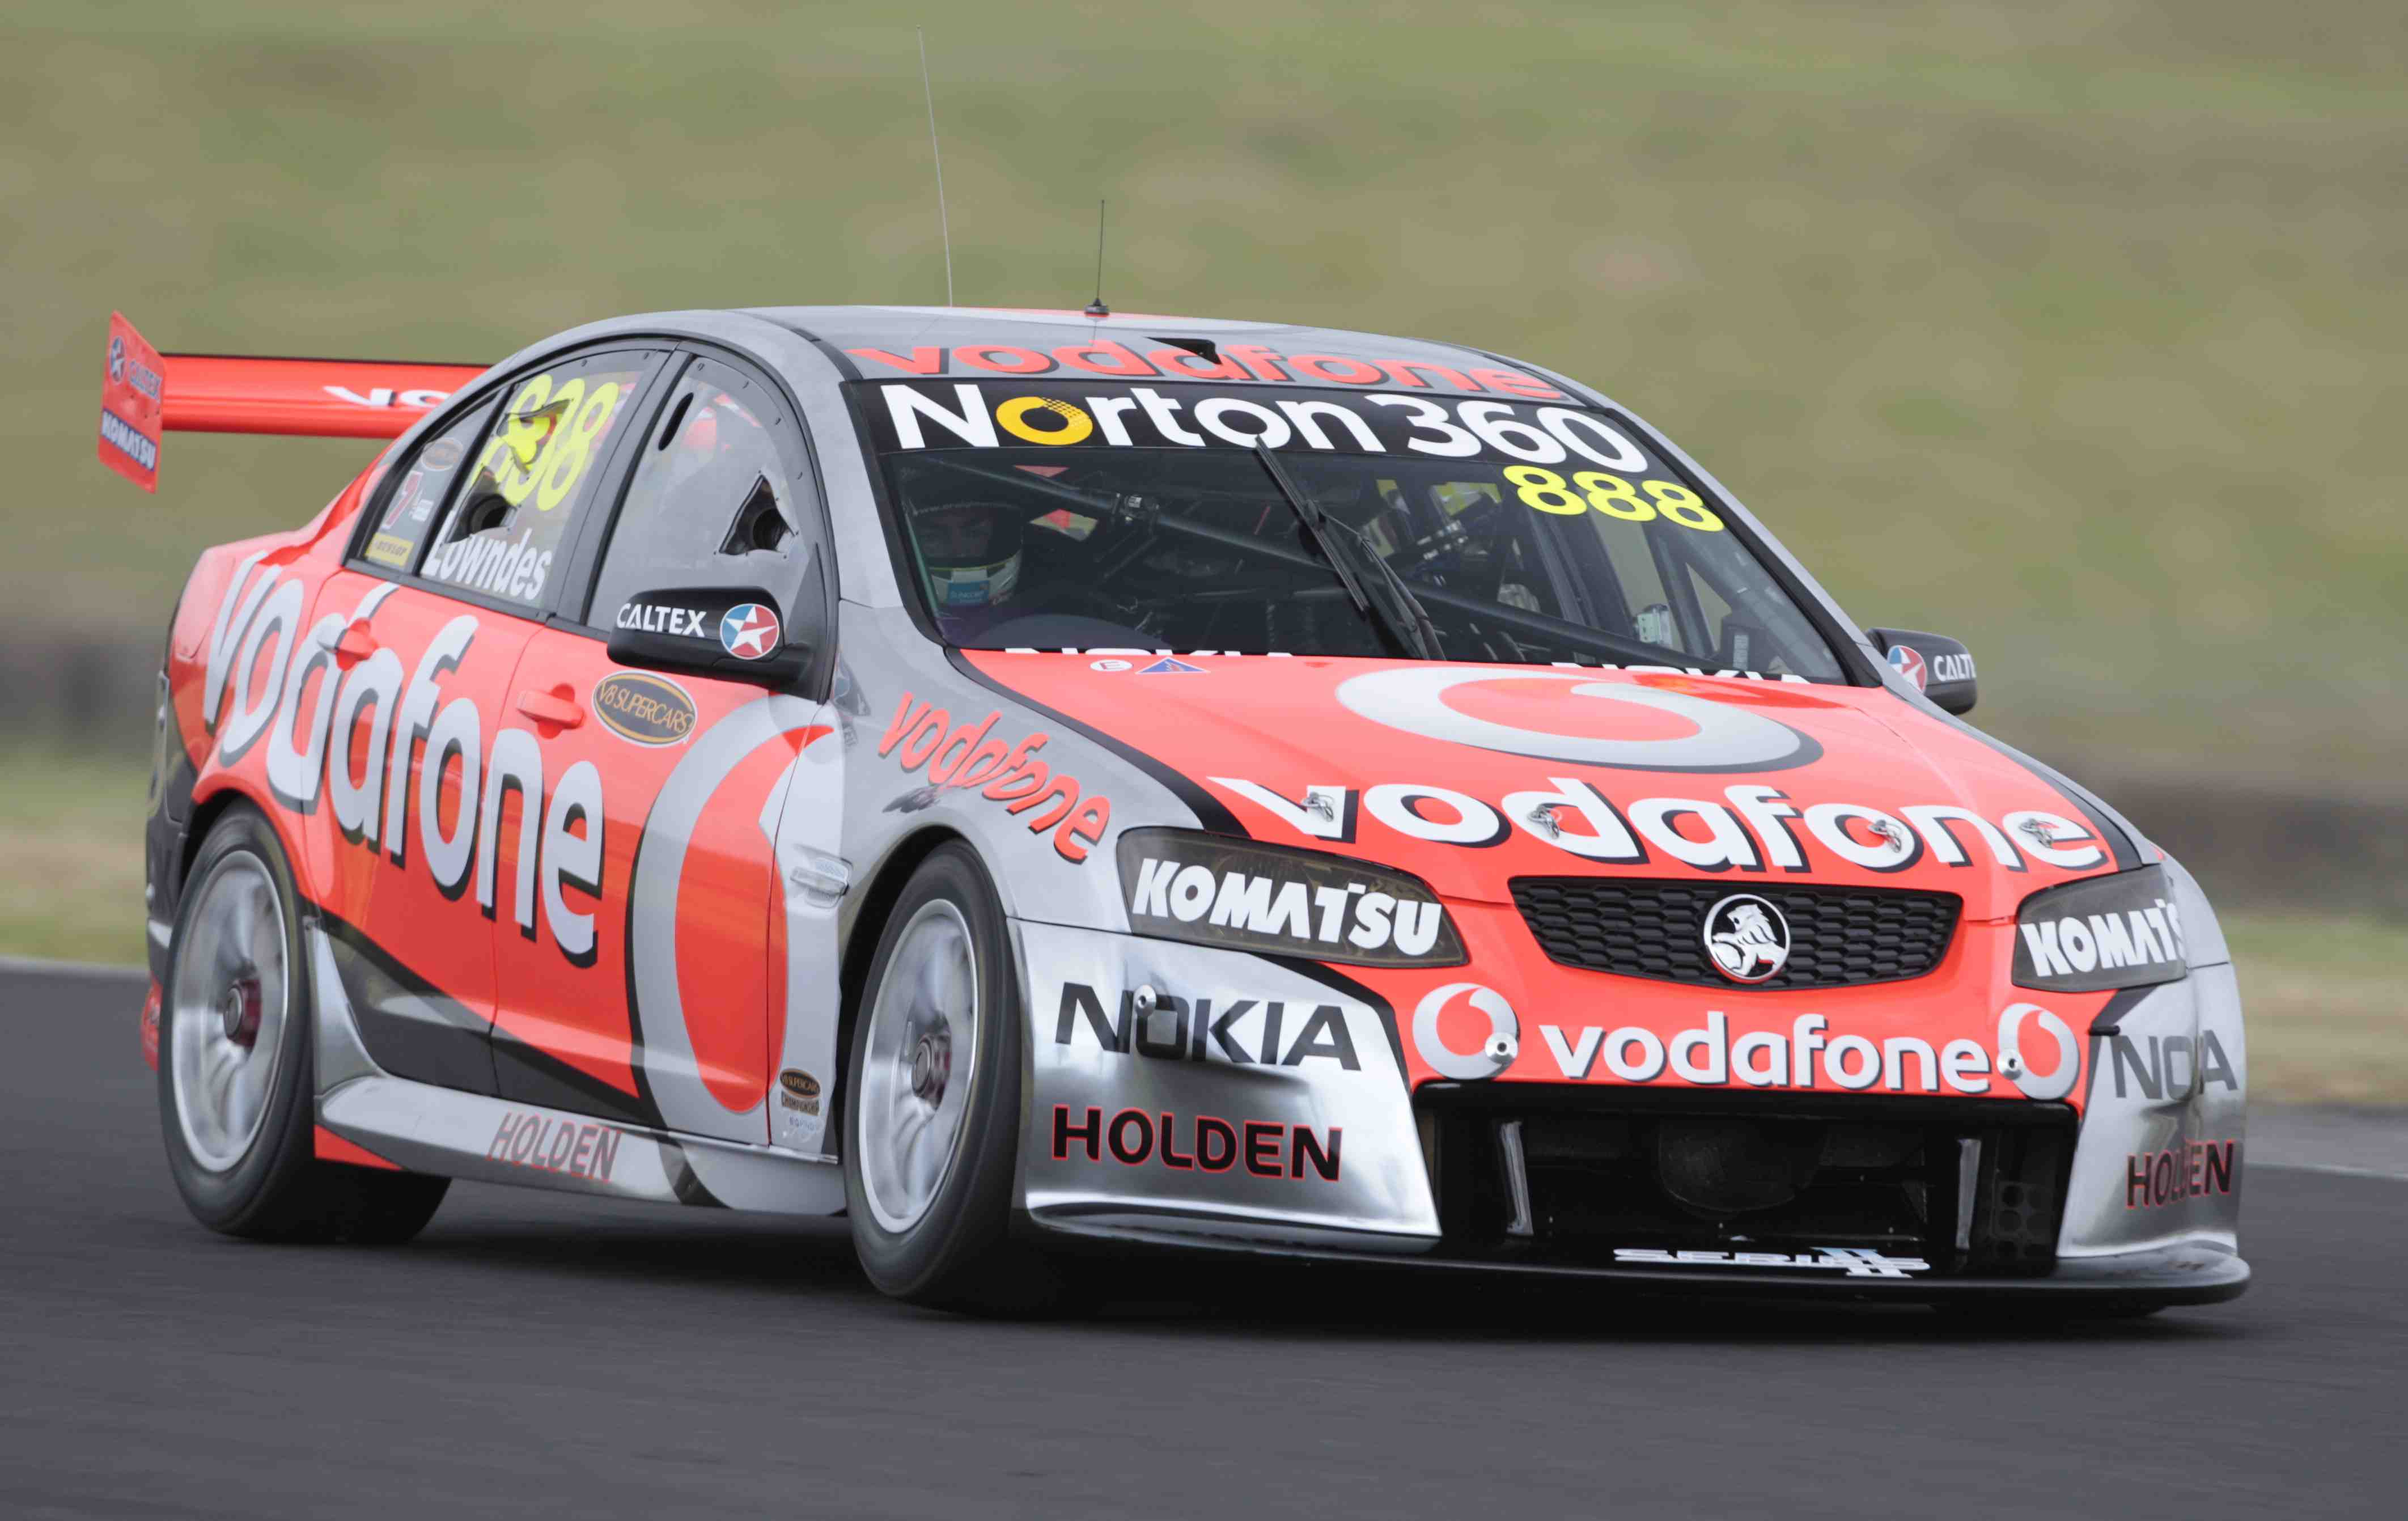 VIDEO: A lap of Eastern Creek with Lowndes